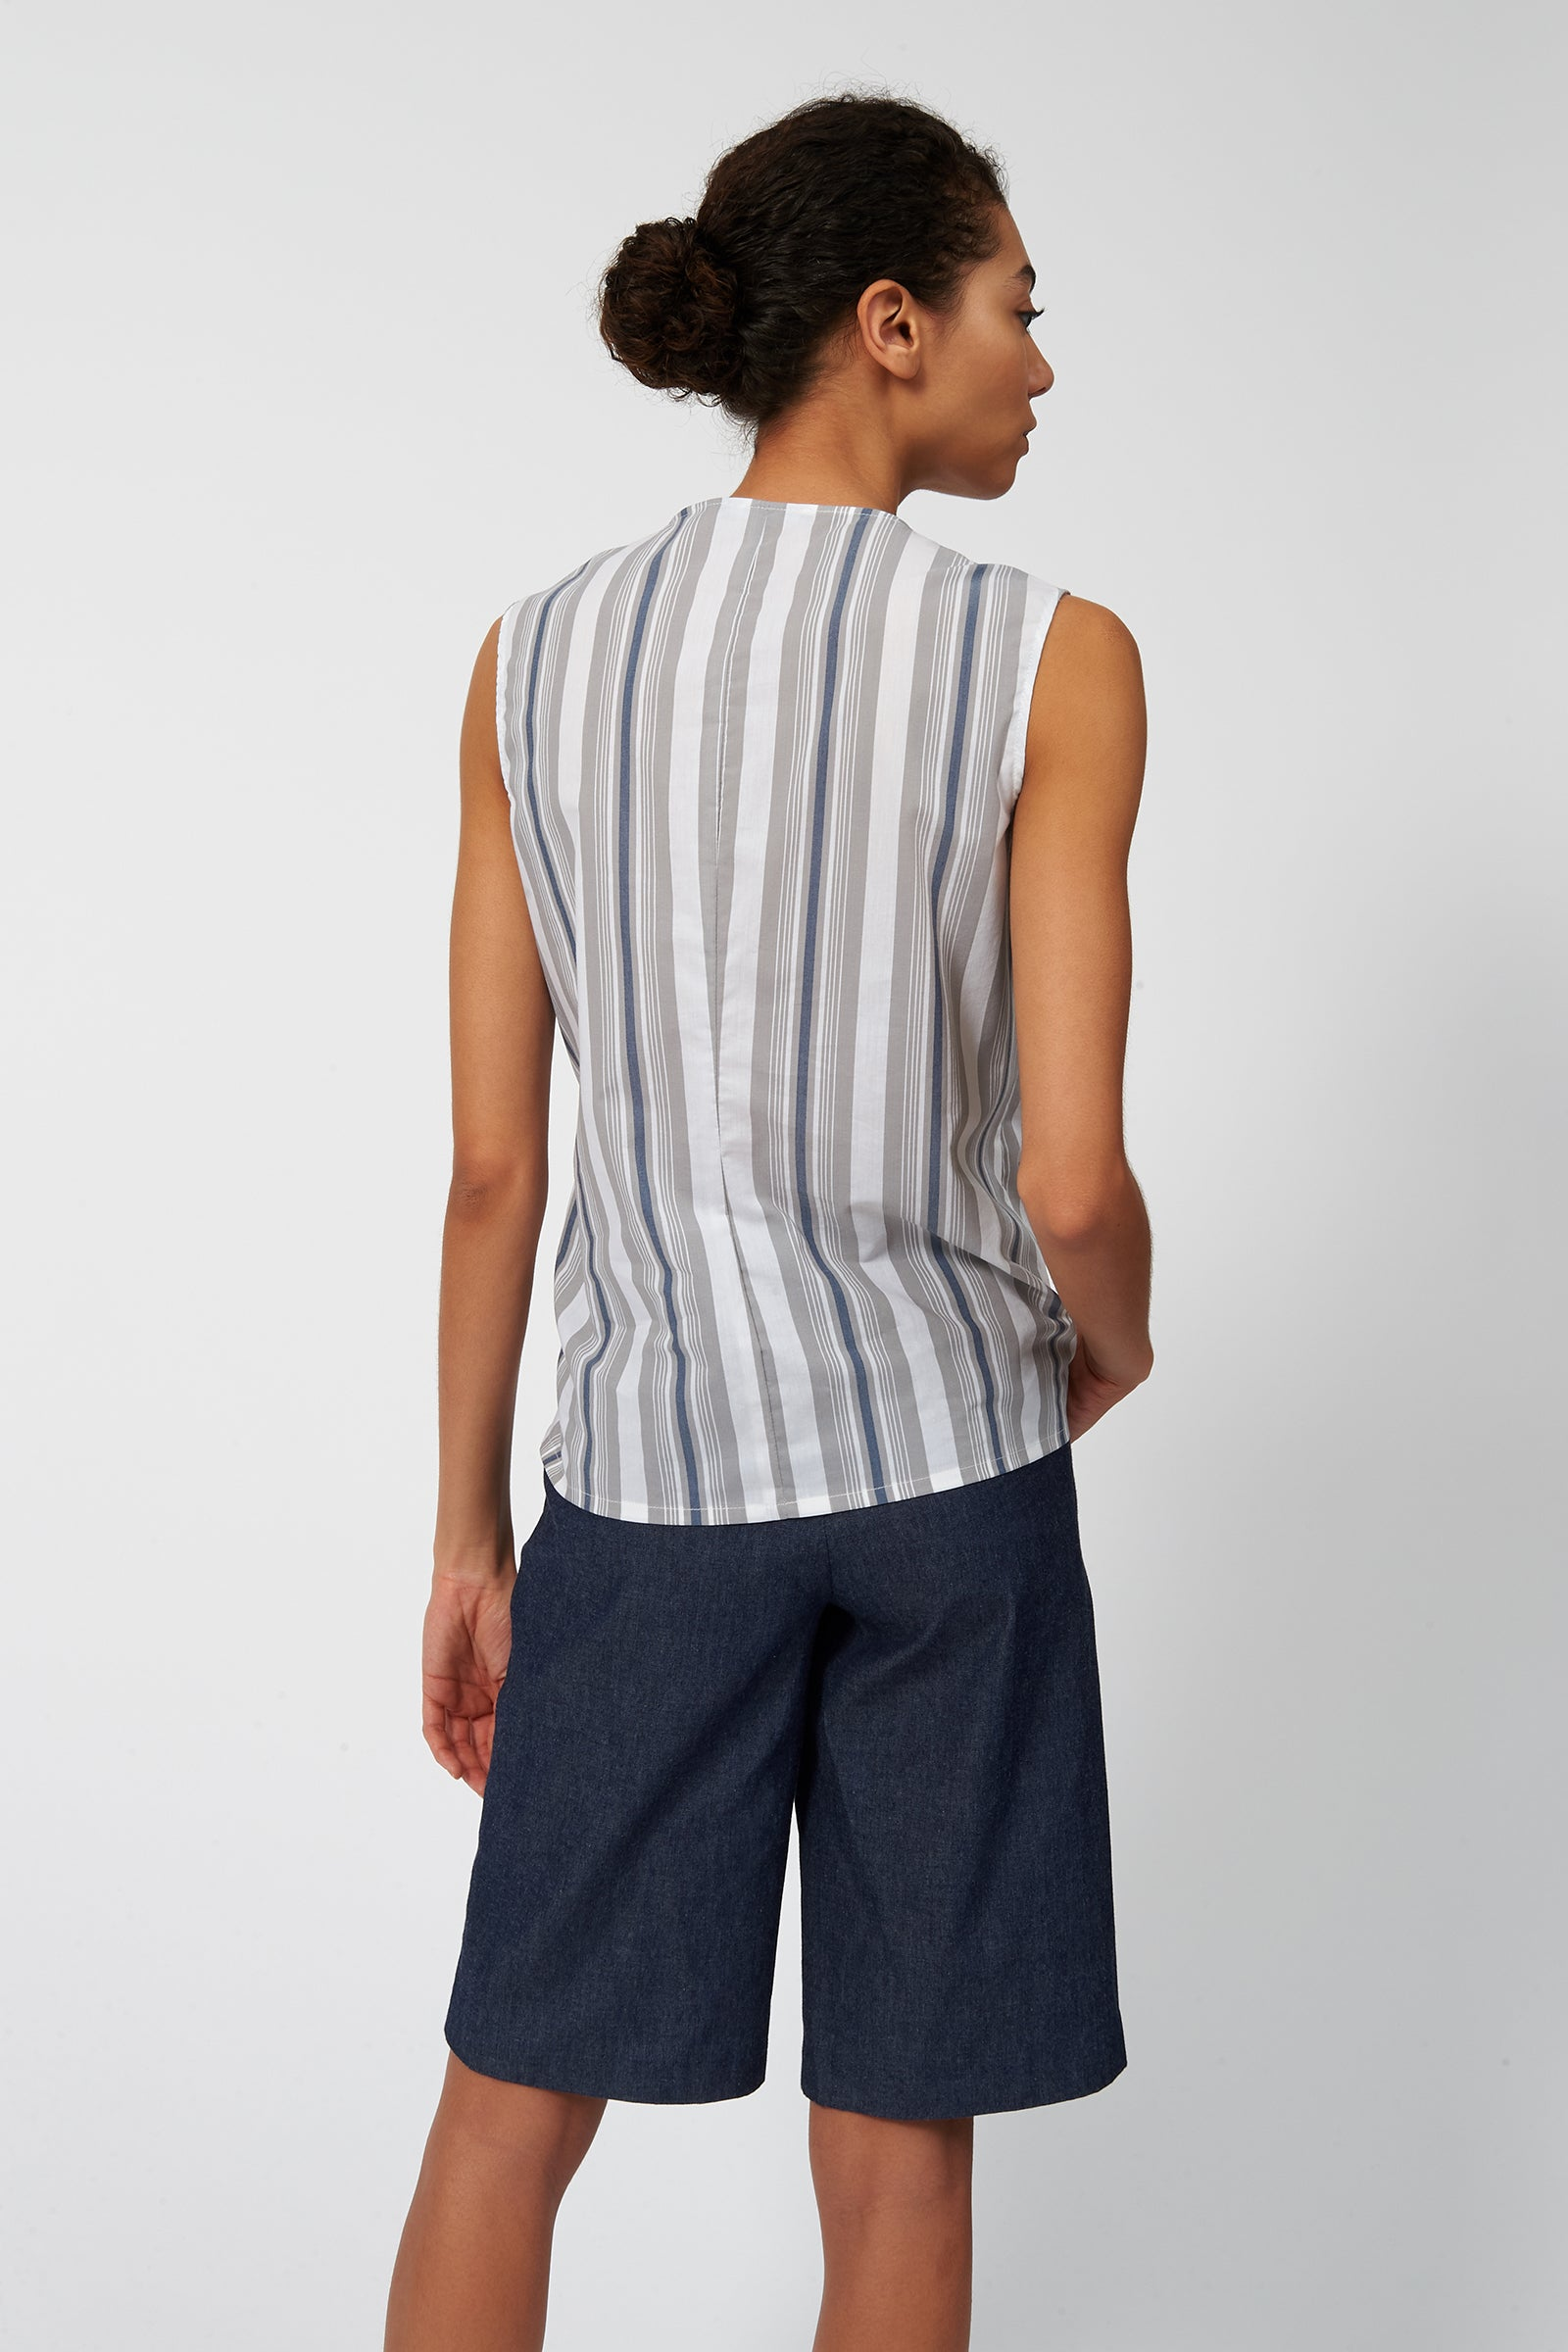 Kal Rieman Tie Hip Shell in Cotton Nylon Stripe on Model Back View